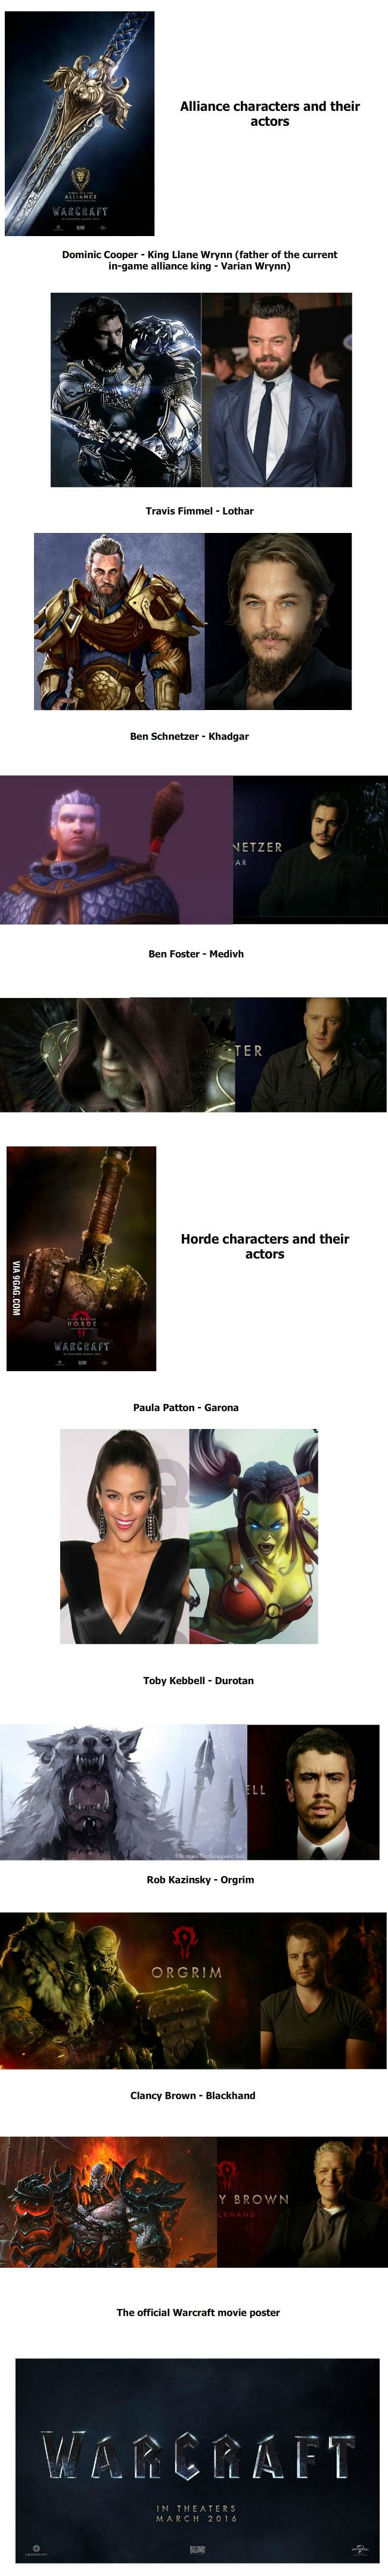 Some of the actors and their roles from the Upcoming Warcraft movie (2016)